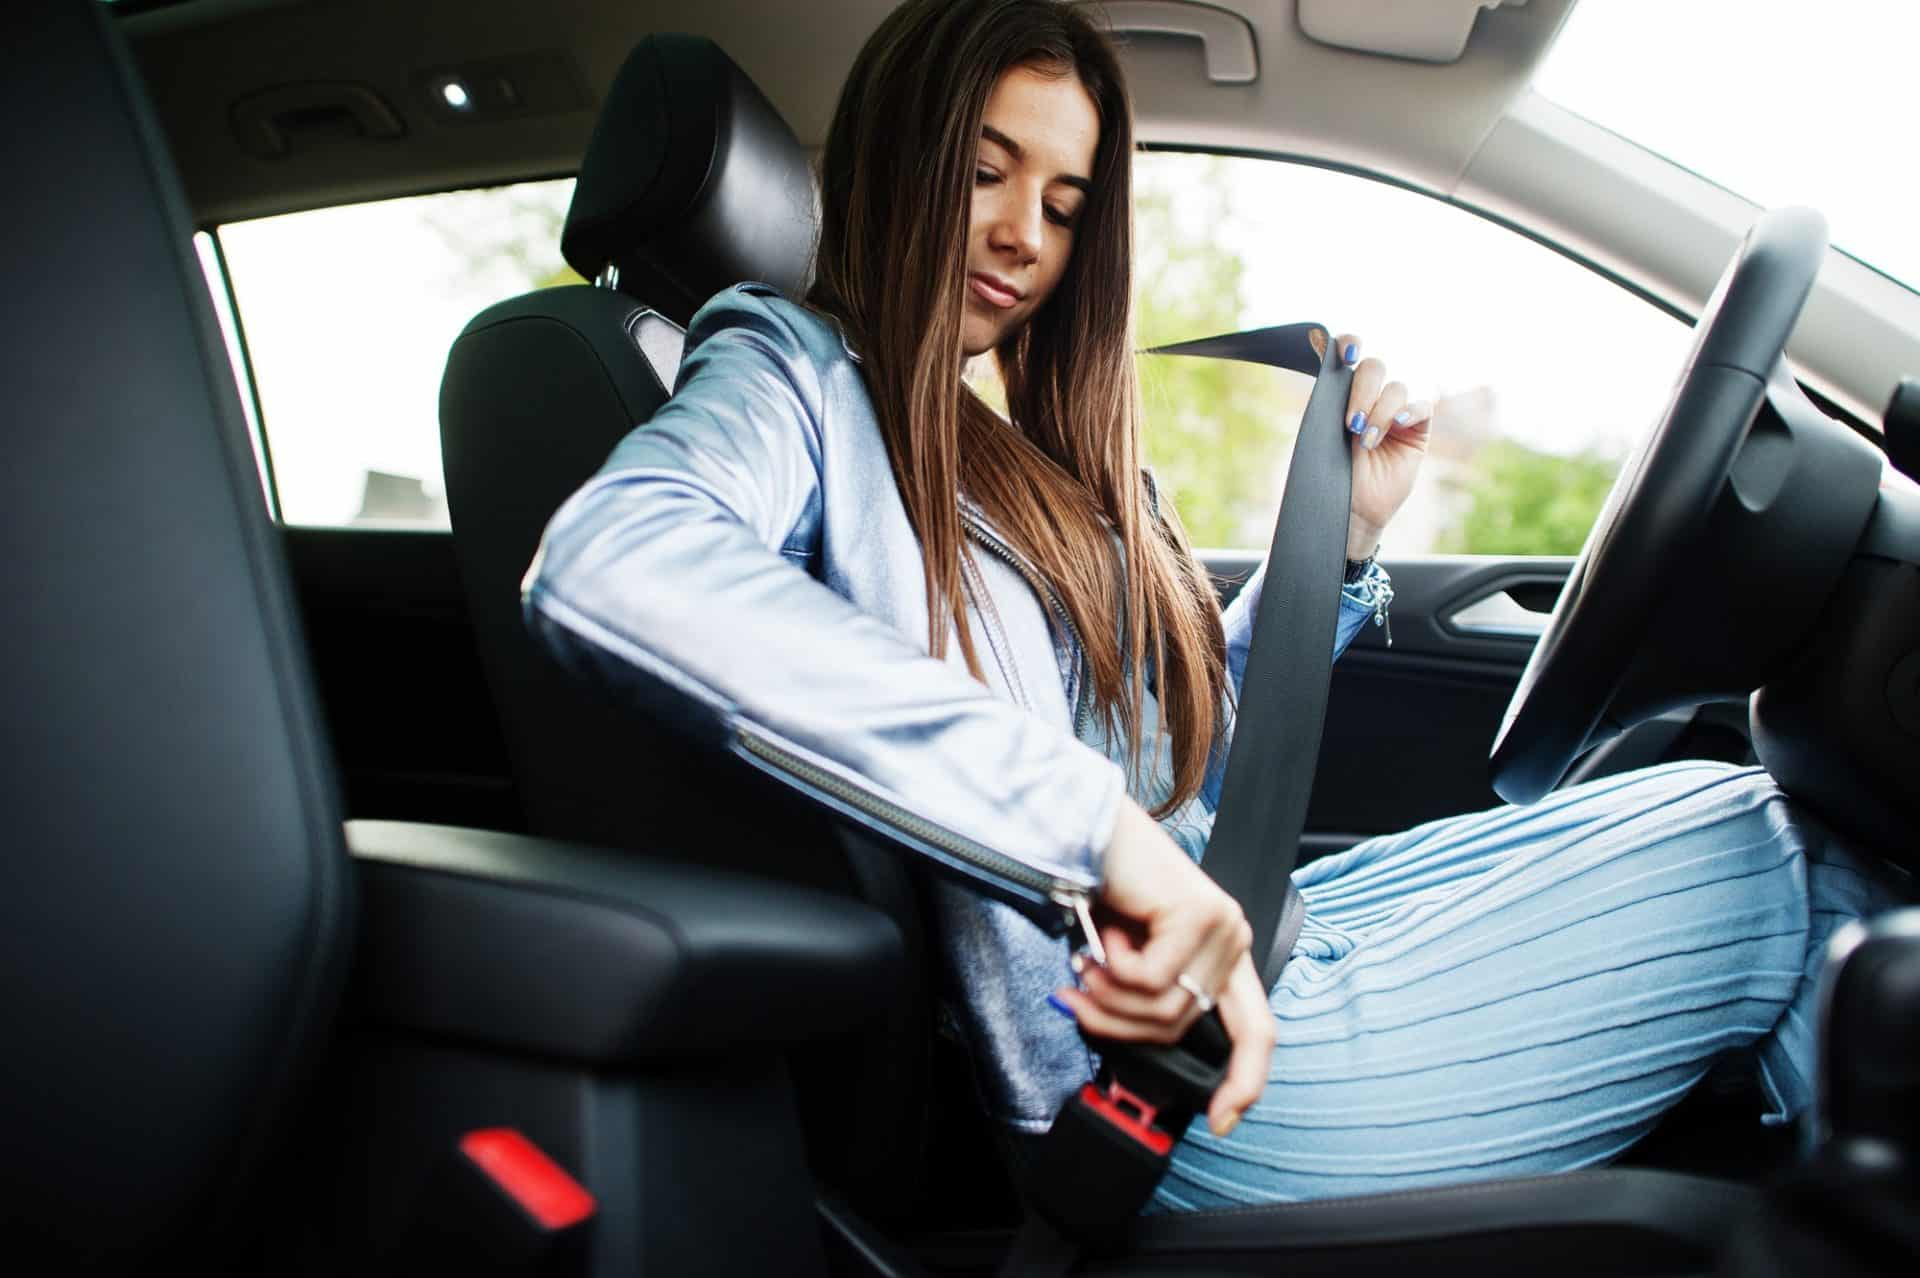 Gorgeous woman sitting inside car interior and tie belt.